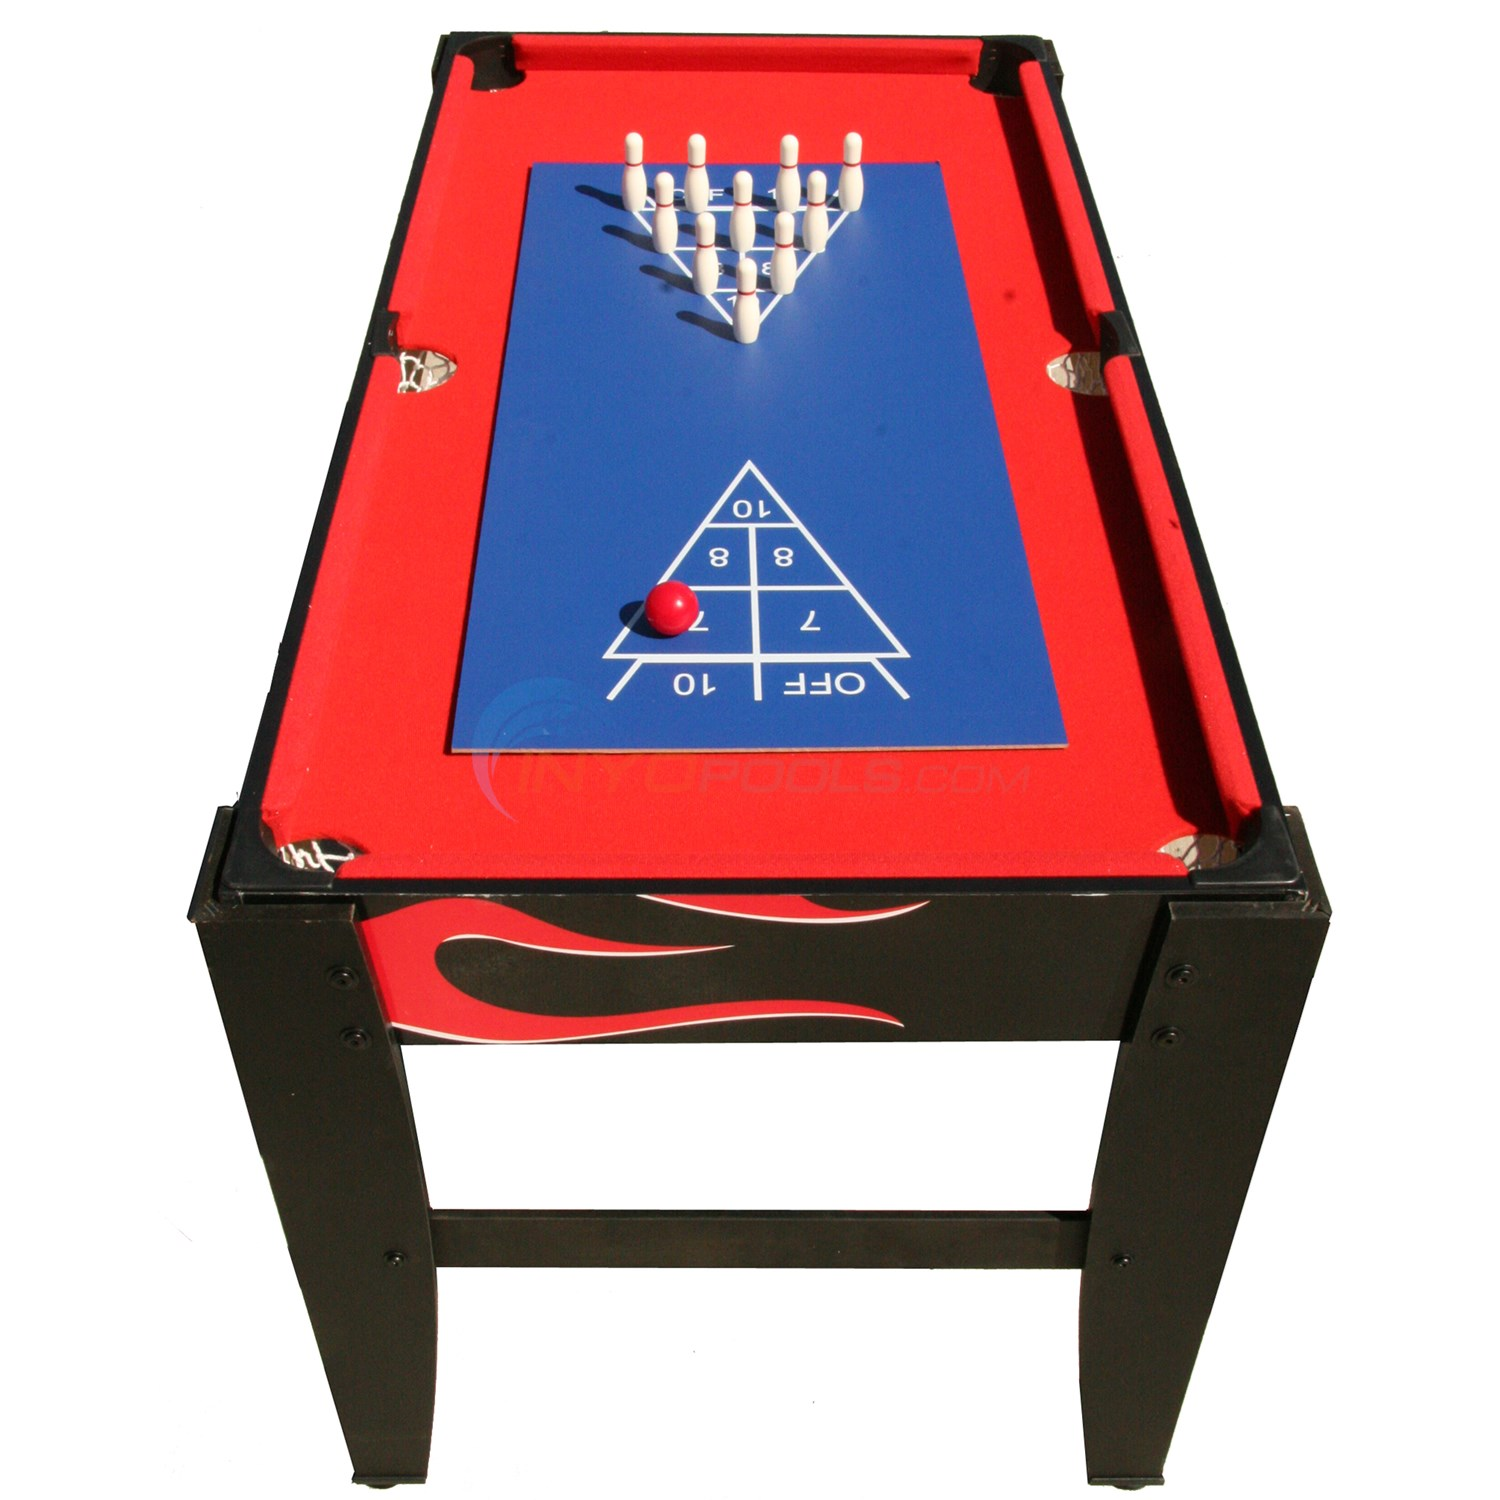 Harvil 20-in-1 Inferno Multi Game Table - NG1017